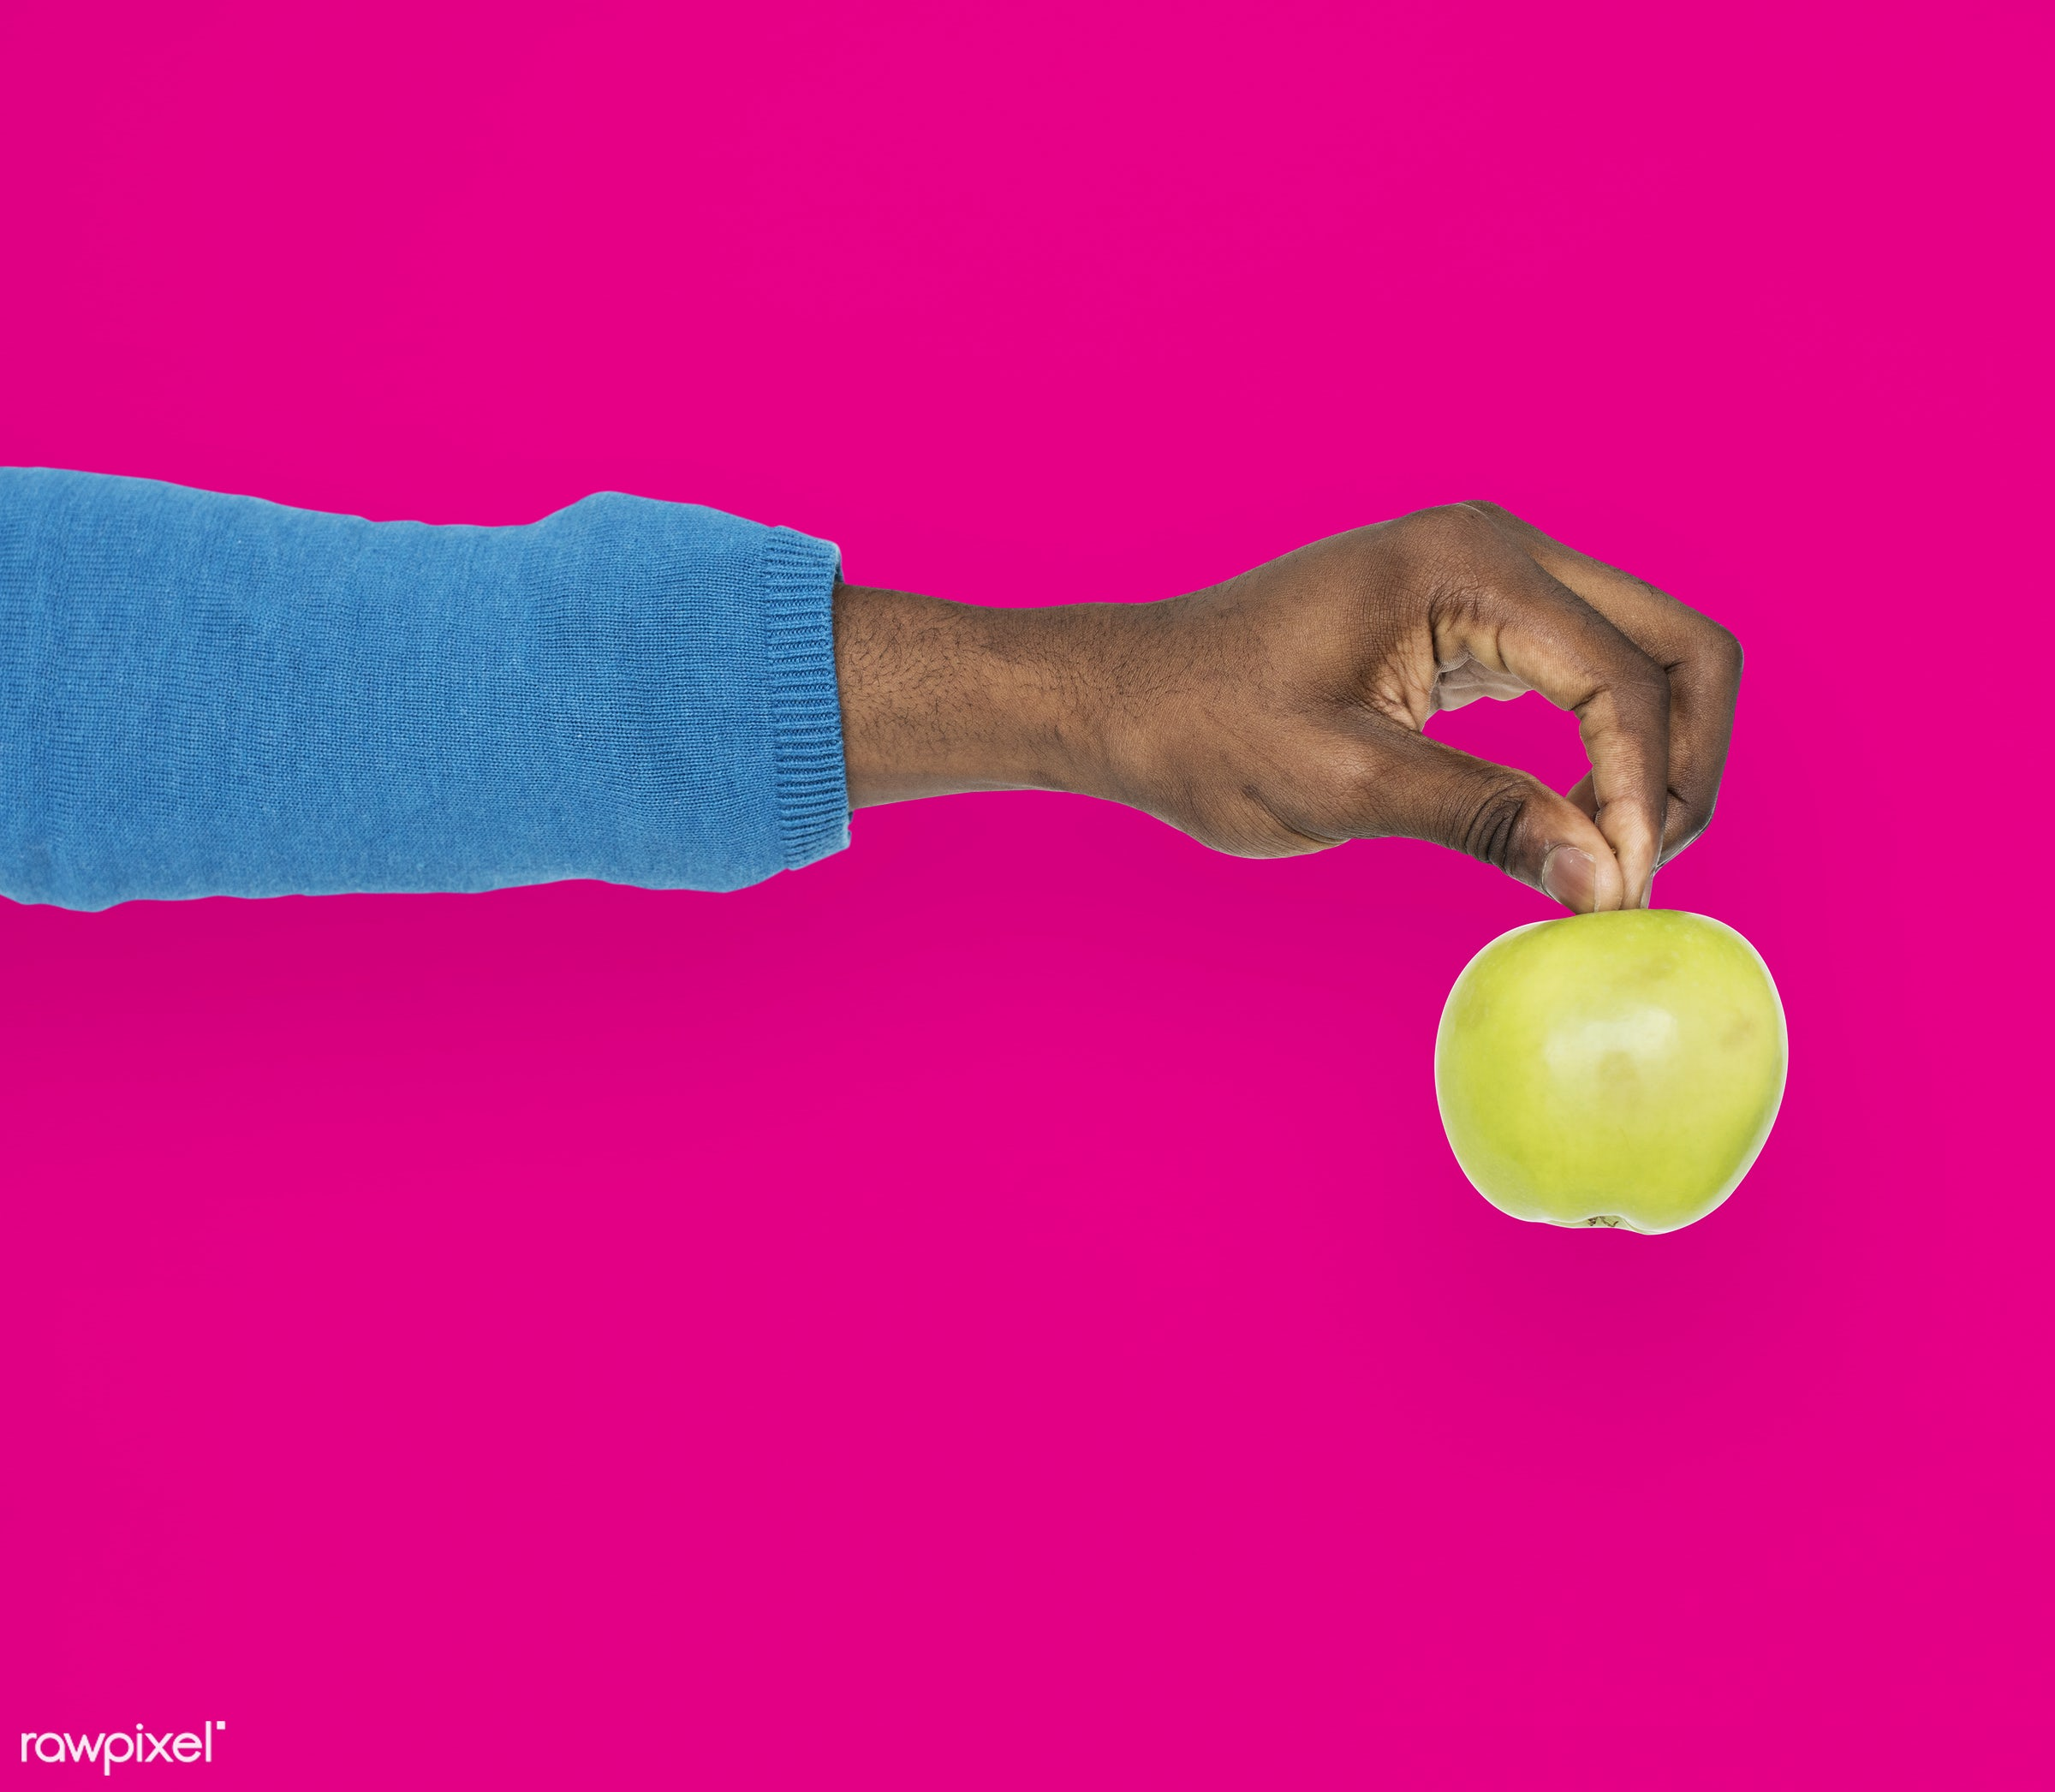 person, diet, race, hand, nature, wellness, lifestyle, showing, pink, isolated, fruit, african descent, gesture, human,...